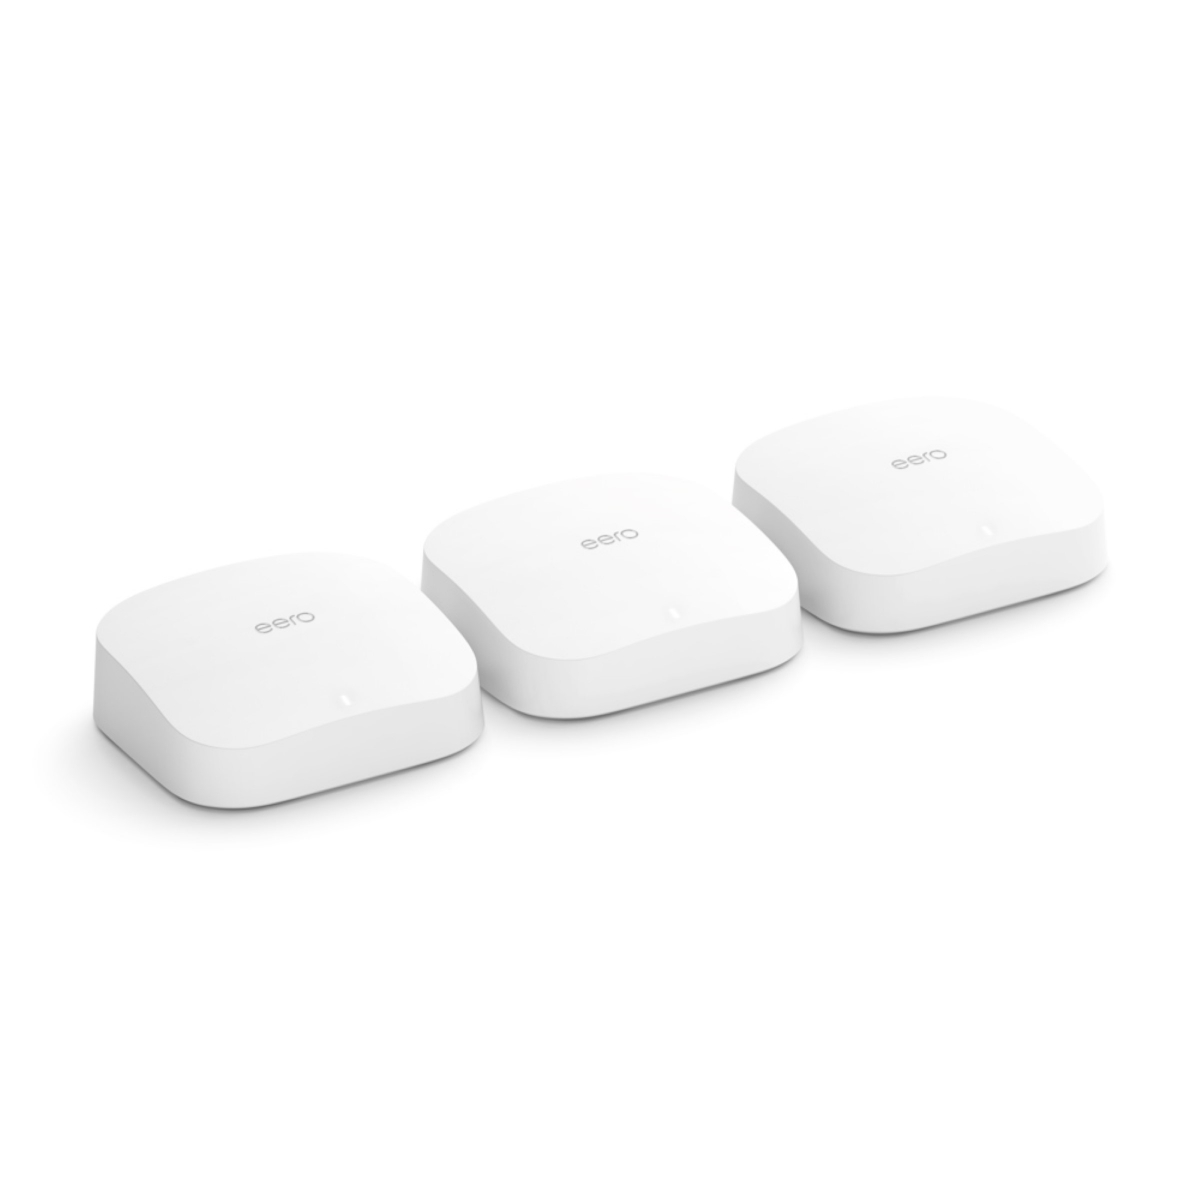 Eero Professional 6: Wifi 6 router with built-in sensible residence hub accessible now thumbnail